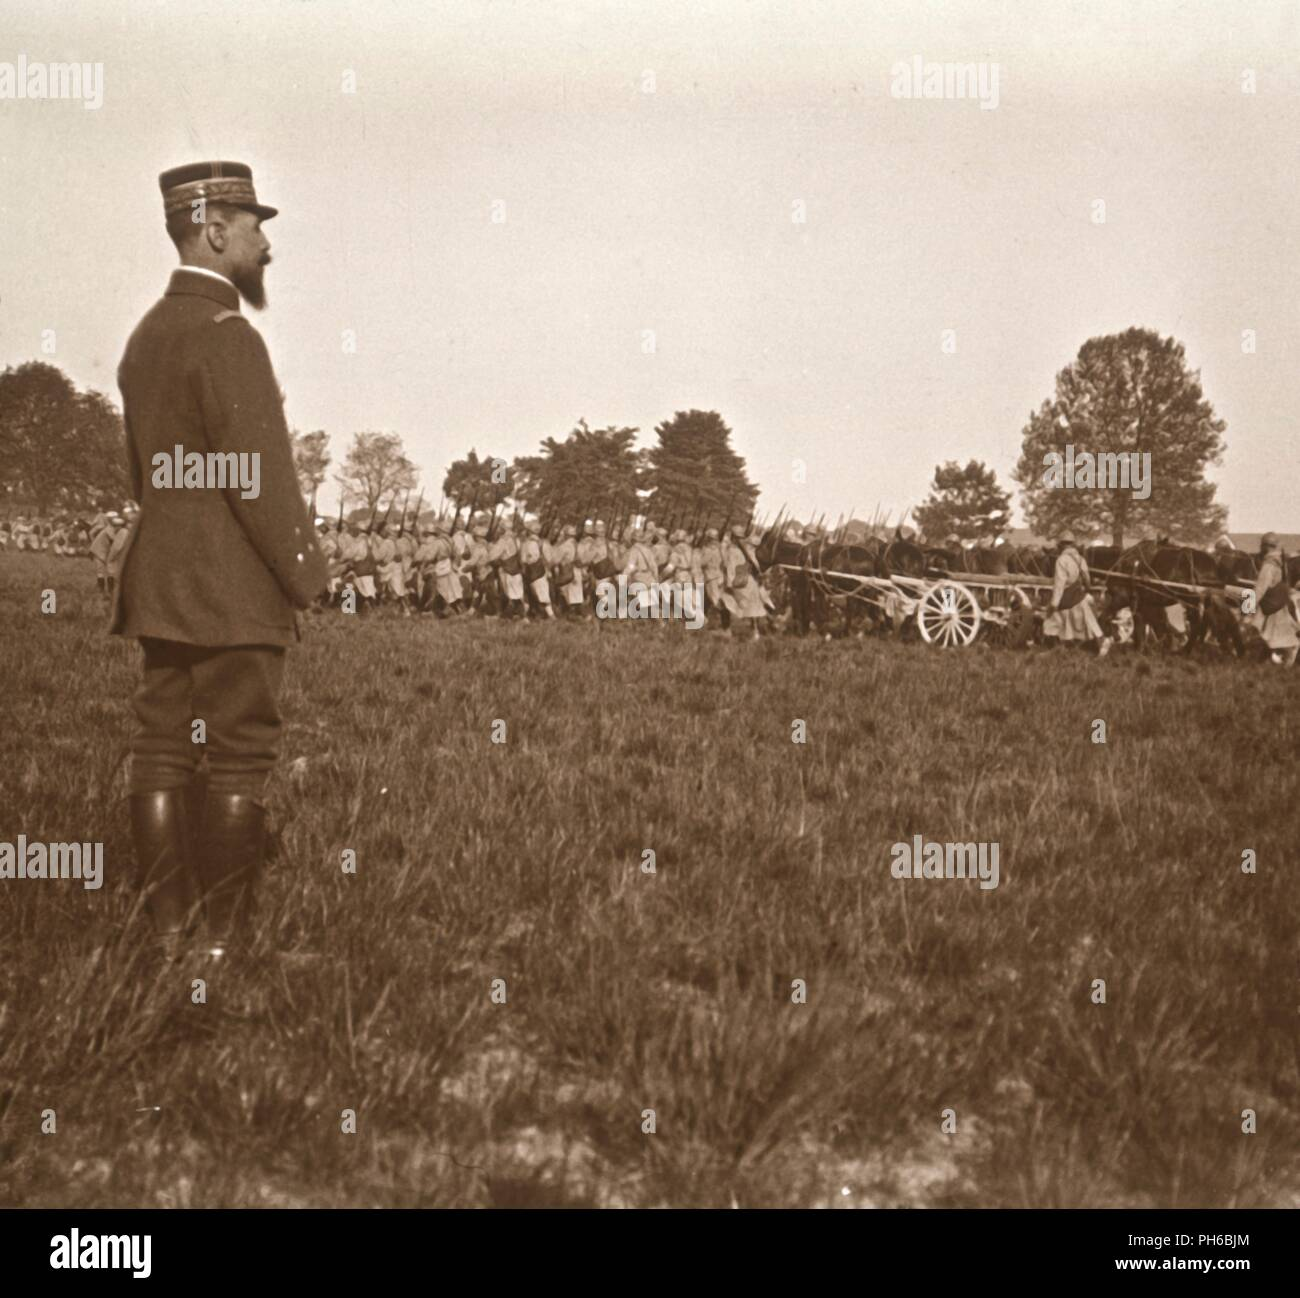 General Henri Gouraud, Champagne, northern France, c1914-c1918. French general Henri Joseph Eugène Gouraud (1867-1946), best known for his leadership of the French Fourth Army at the end of the First World War. Photograph from a series of glass plate stereoview images depicting scenes from World War I (1914-1918). - Stock Image